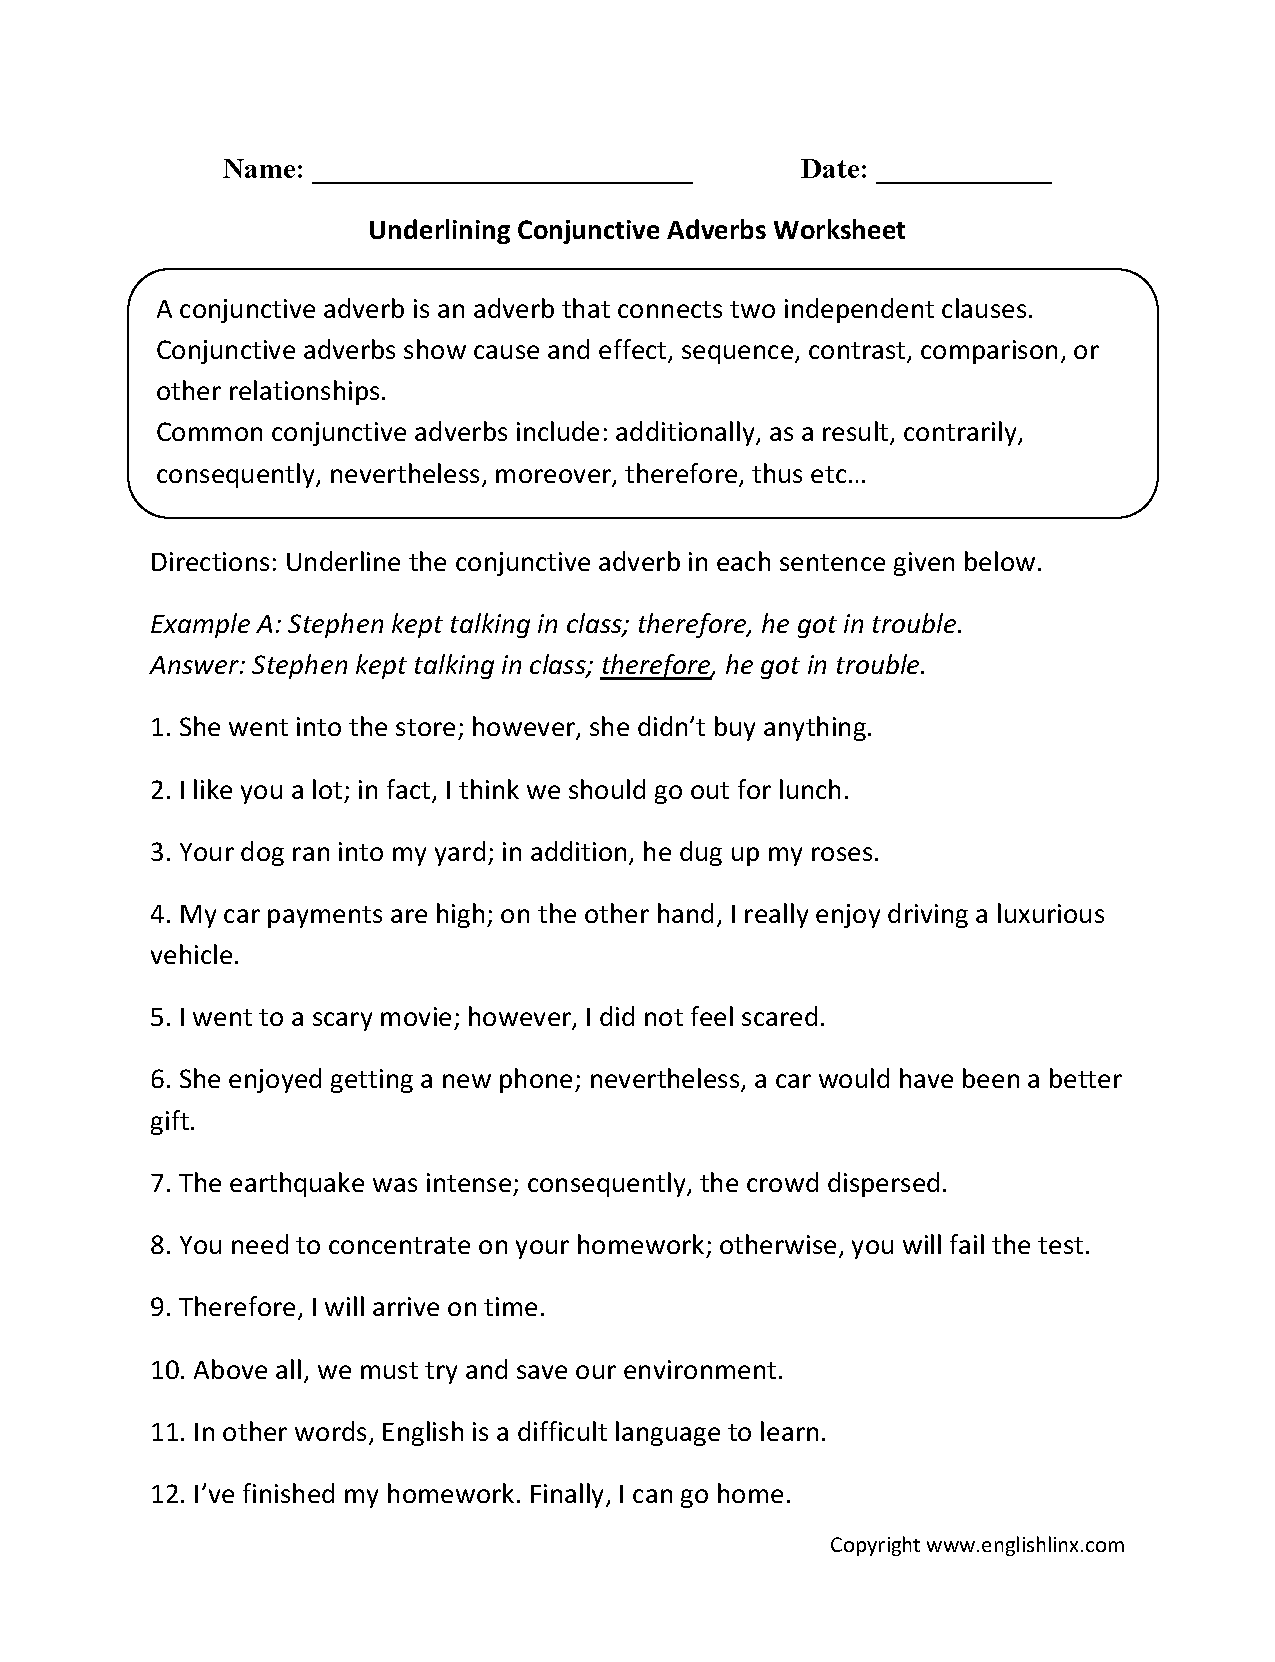 Aldiablosus  Picturesque Englishlinxcom  Conjunctions Worksheets With Lovable Worksheet With Endearing Fun Worksheets For First Grade Also Free Printable Worksheets For Nd Graders In Addition Worksheets Order Of Operations And  Digit Addition And Subtraction With Regrouping Worksheets As Well As Convert Metric Units Worksheet Additionally Math Adding And Subtracting Worksheets From Englishlinxcom With Aldiablosus  Lovable Englishlinxcom  Conjunctions Worksheets With Endearing Worksheet And Picturesque Fun Worksheets For First Grade Also Free Printable Worksheets For Nd Graders In Addition Worksheets Order Of Operations From Englishlinxcom